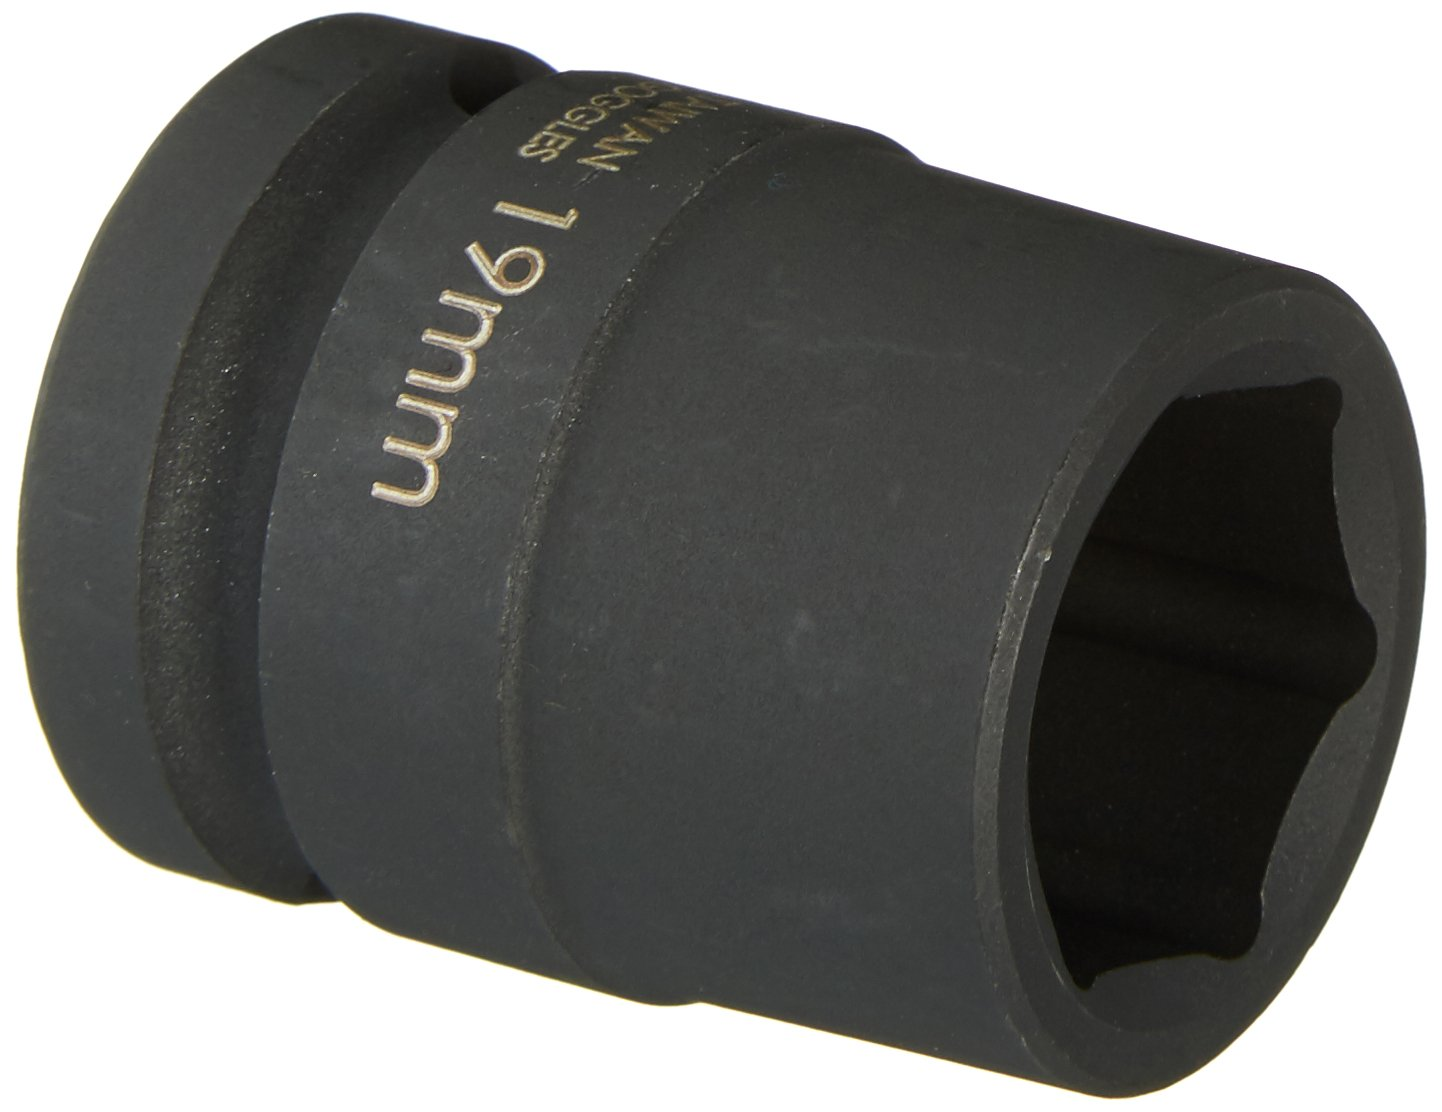 Williams 37519 19mm Shallow 6-Point Impact Socket 1//2 Drive